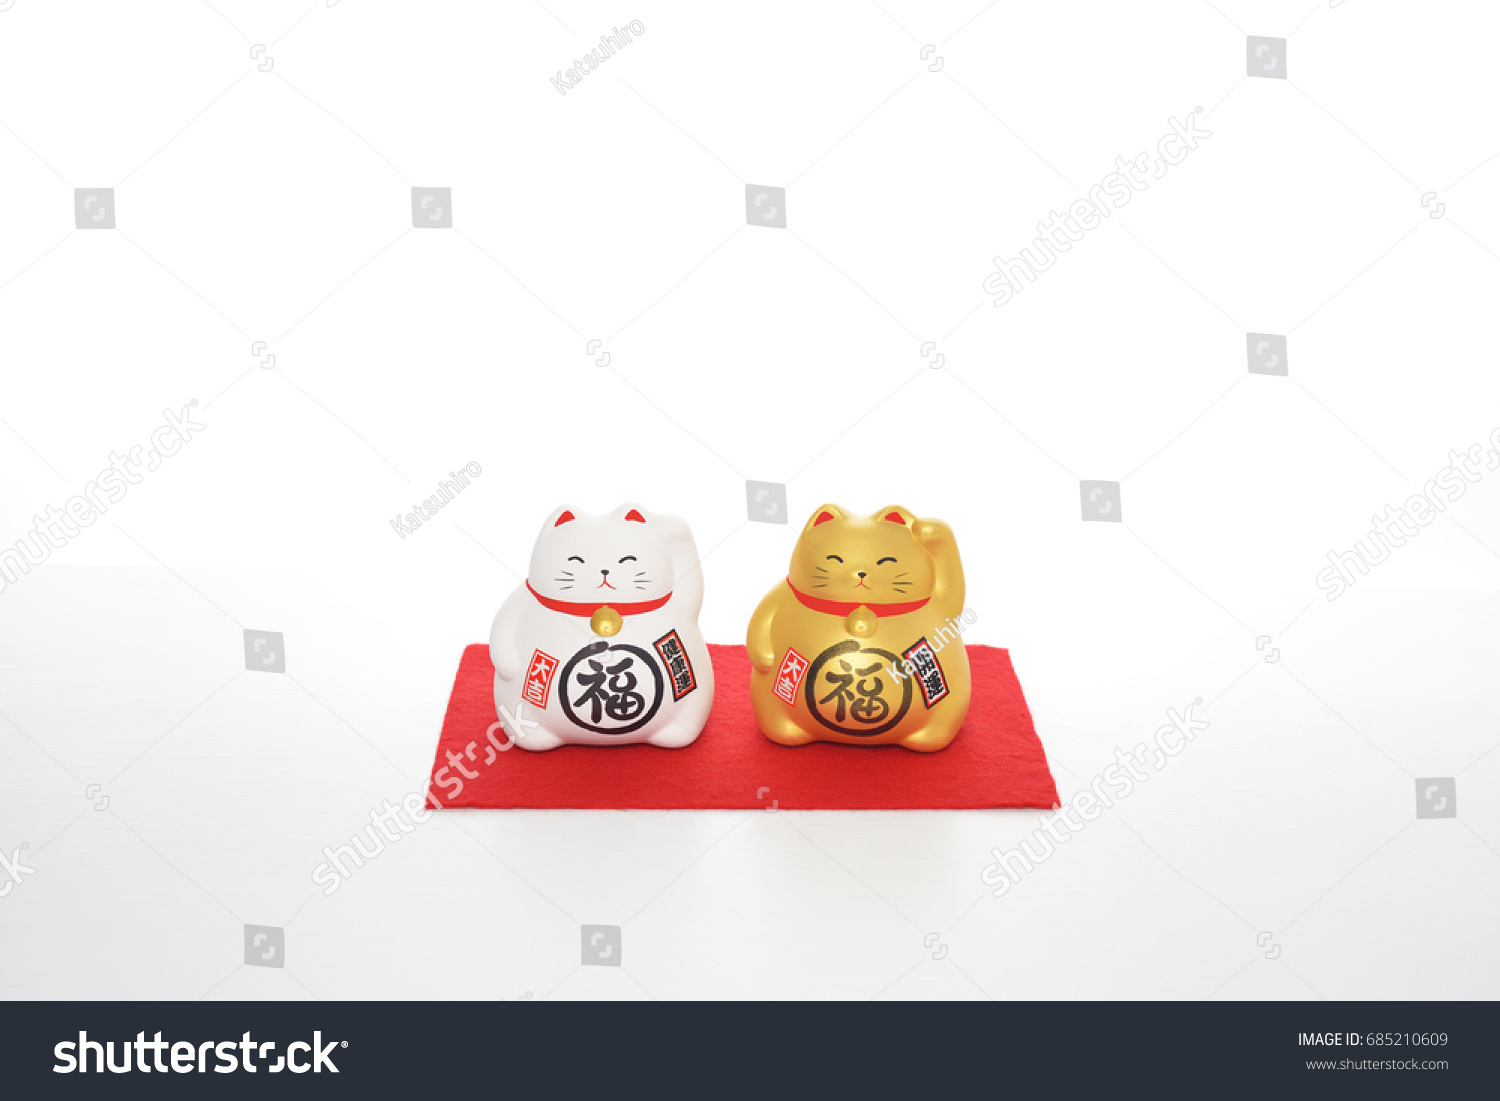 Cat Symbol Made Usually Ceramic Ones Stock Photo 100 Legal